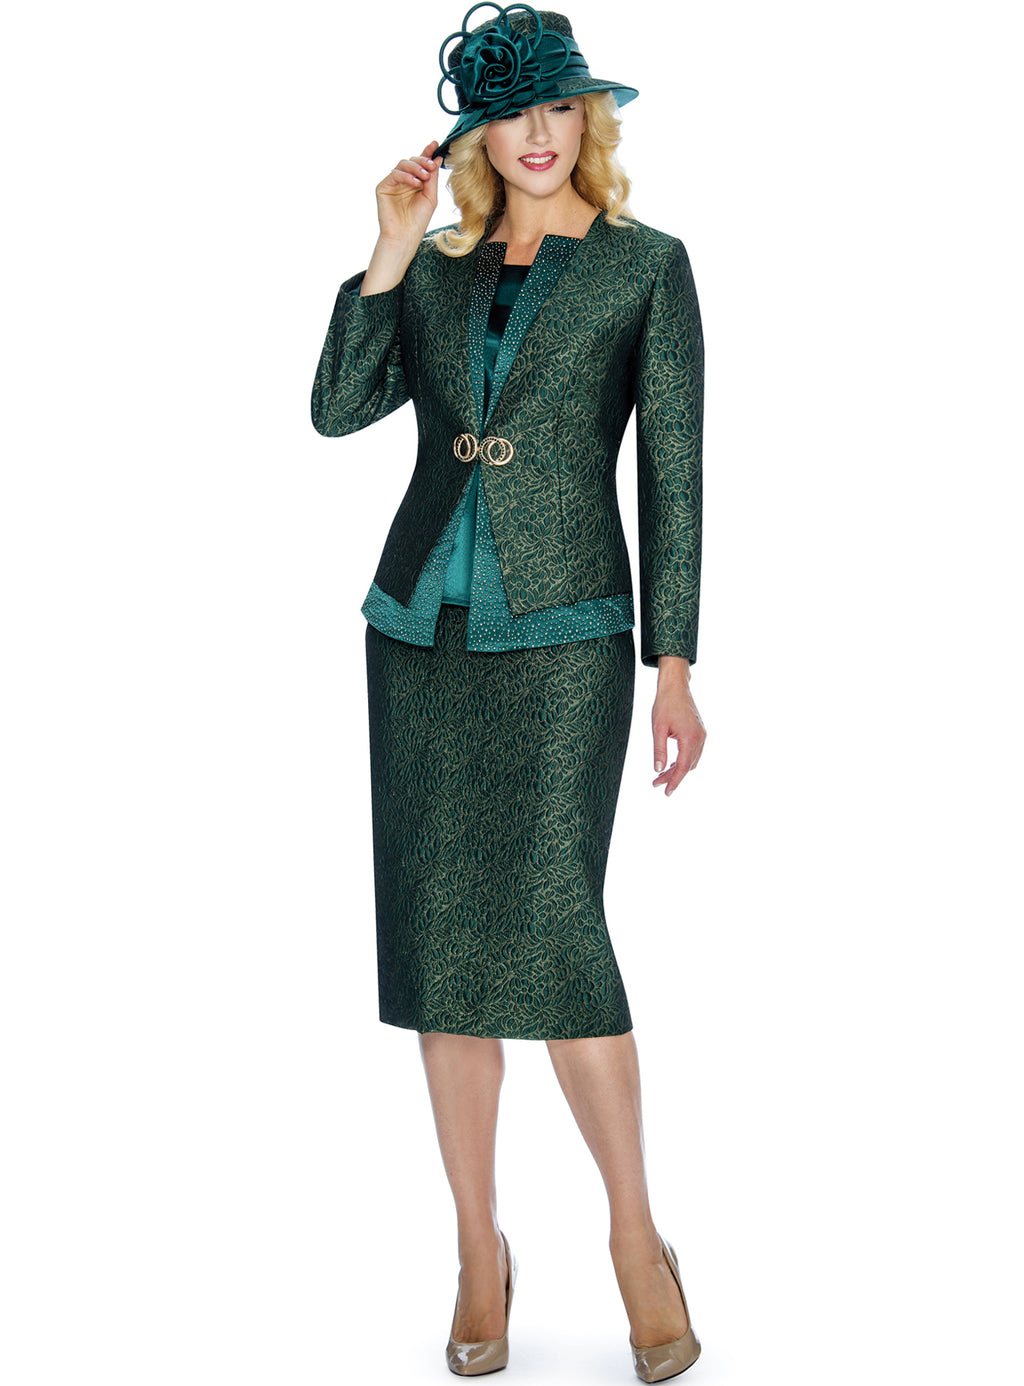 Emerald Floral Brocade Three-Piece Suit 0907